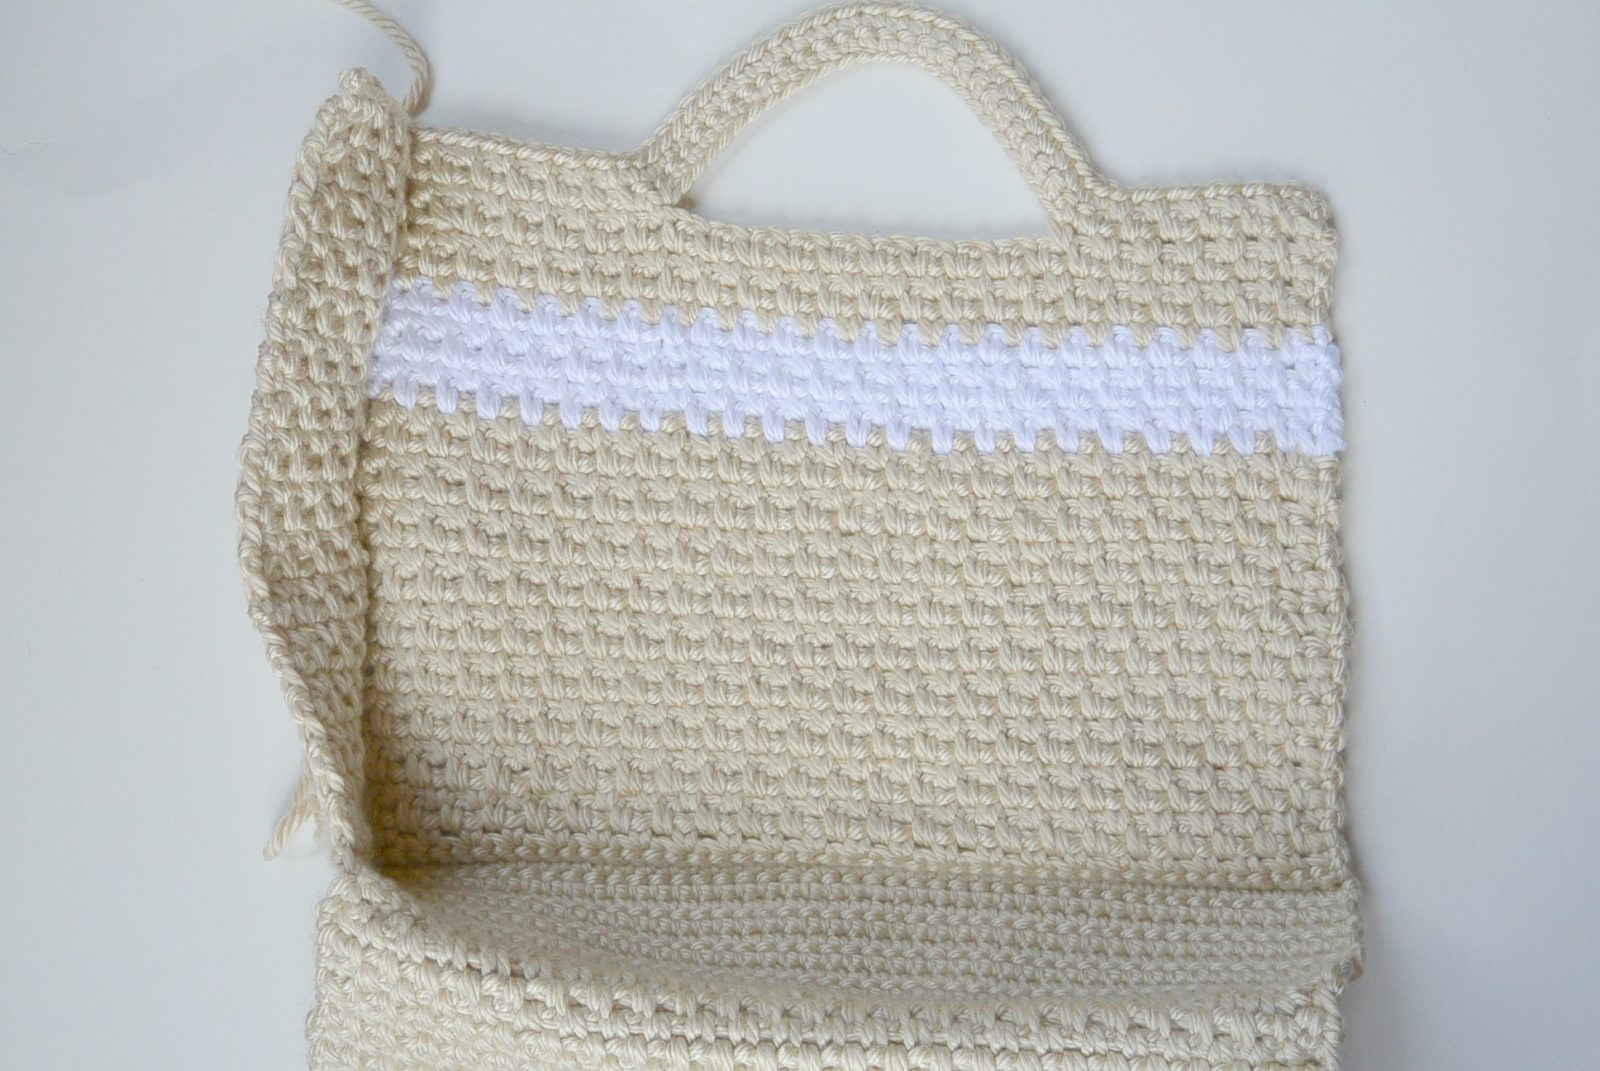 How To Crochet A Purse : This is how the purse looks when it is coming together. You start with ...